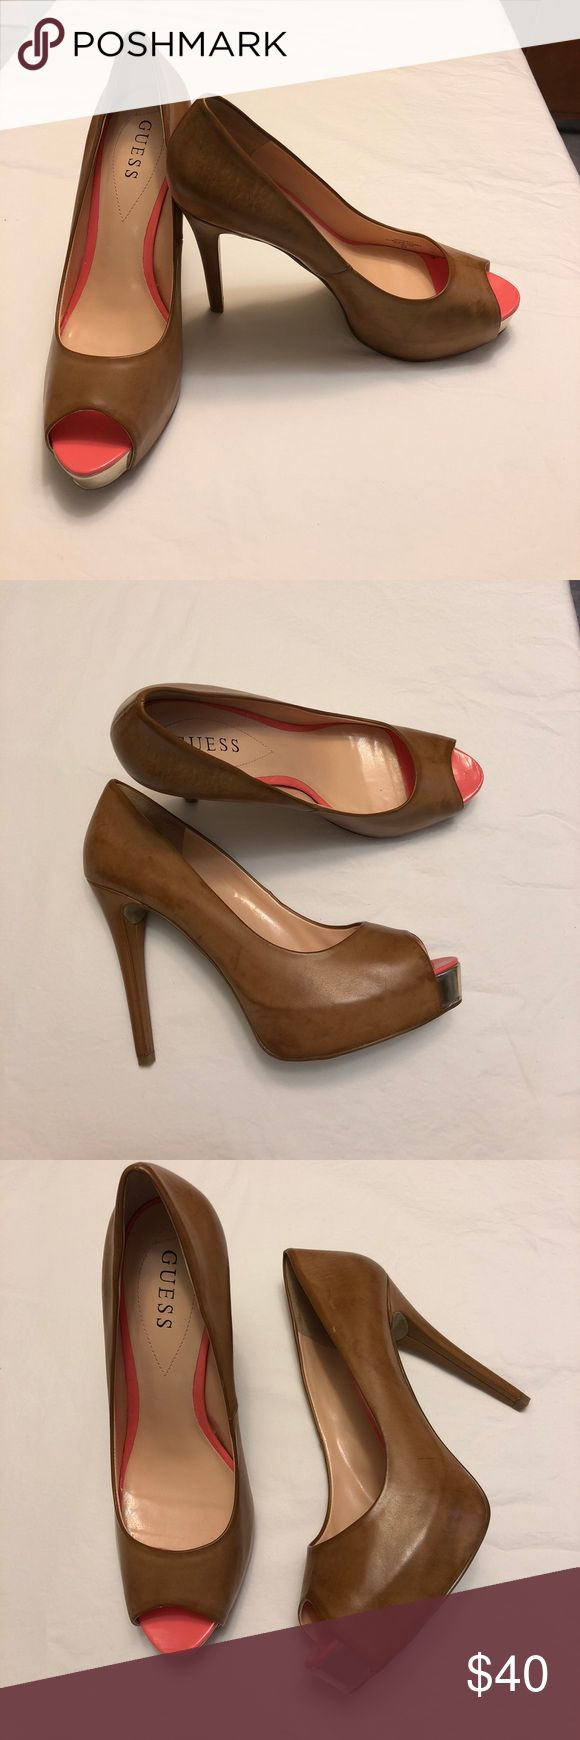 """Guess WG Patches Stiletto Heels Beautiful Guess WG Patches Open Toe Stiletto Heels. All man made material, but look like distressed leather. Only worn once, they are in excellent used condition. 5"""" heel with 1"""" platform. Smoke free home. No trades. Guess Shoes Platforms"""